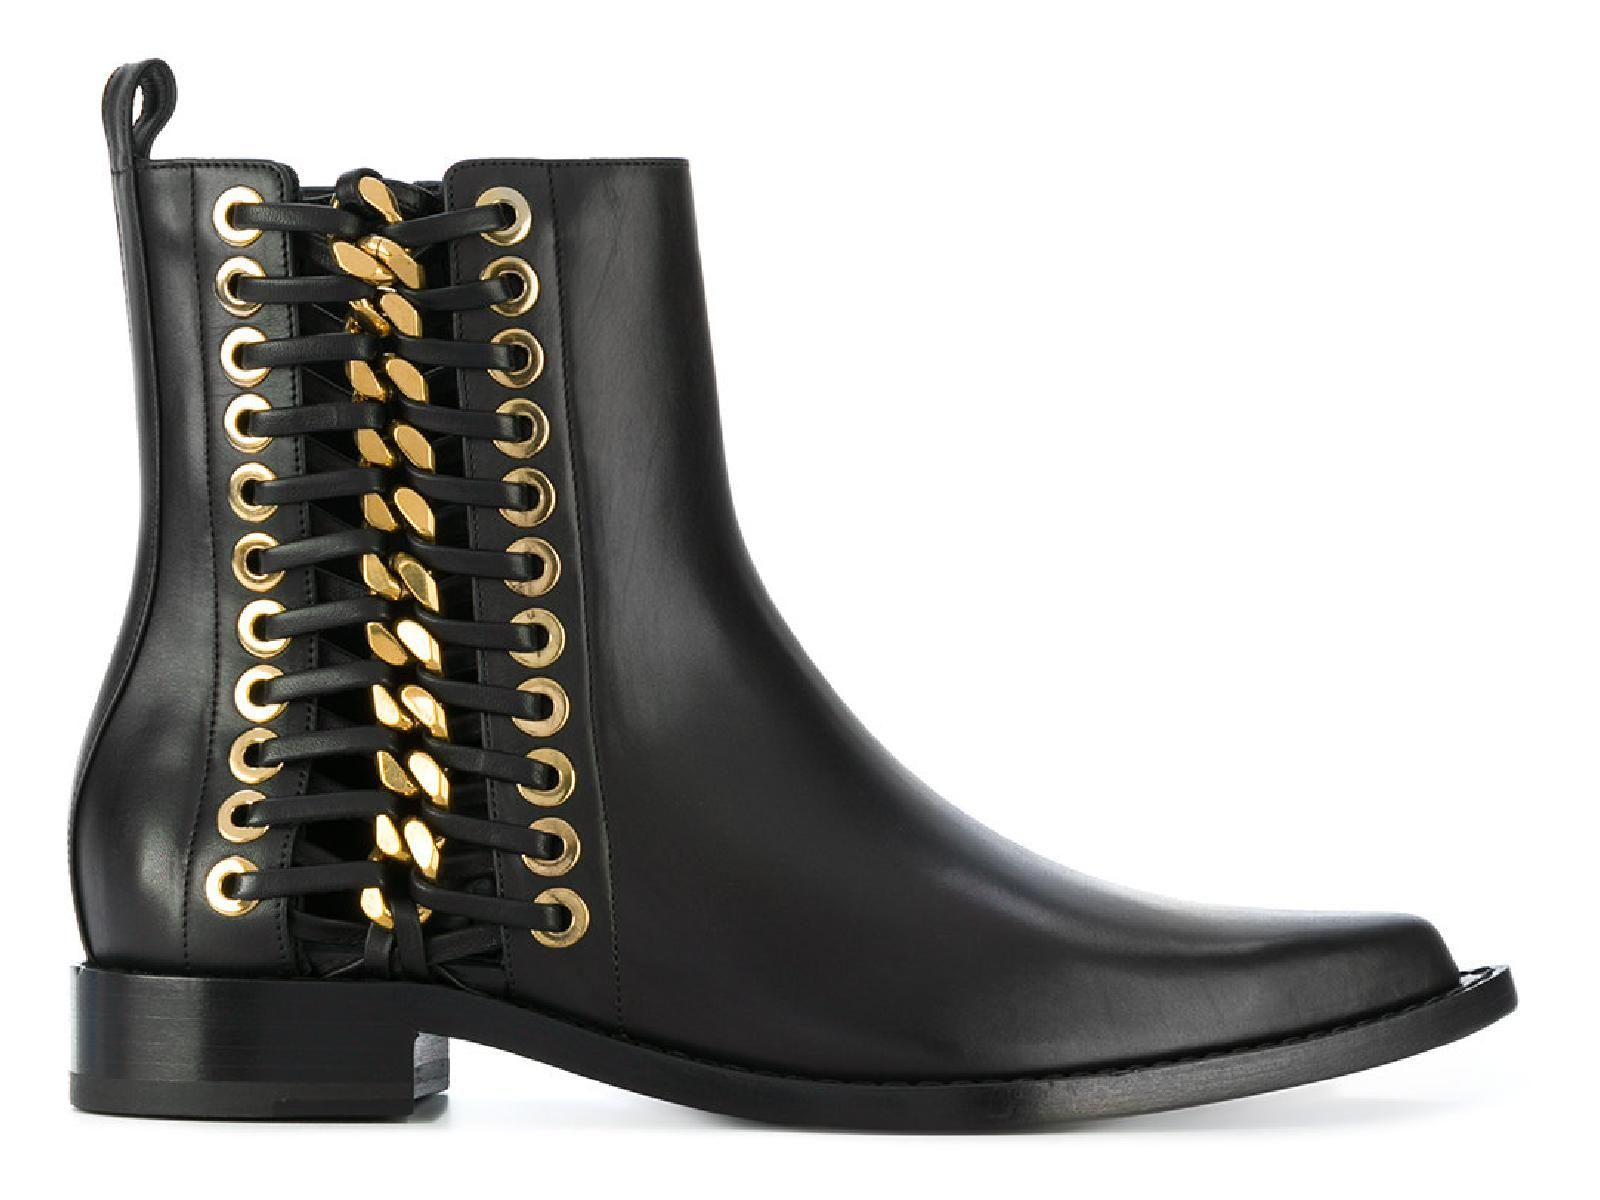 ALEXANDER MCQUEEN BLACK LEATHER ANKLE BOOTS,493542WHR531088